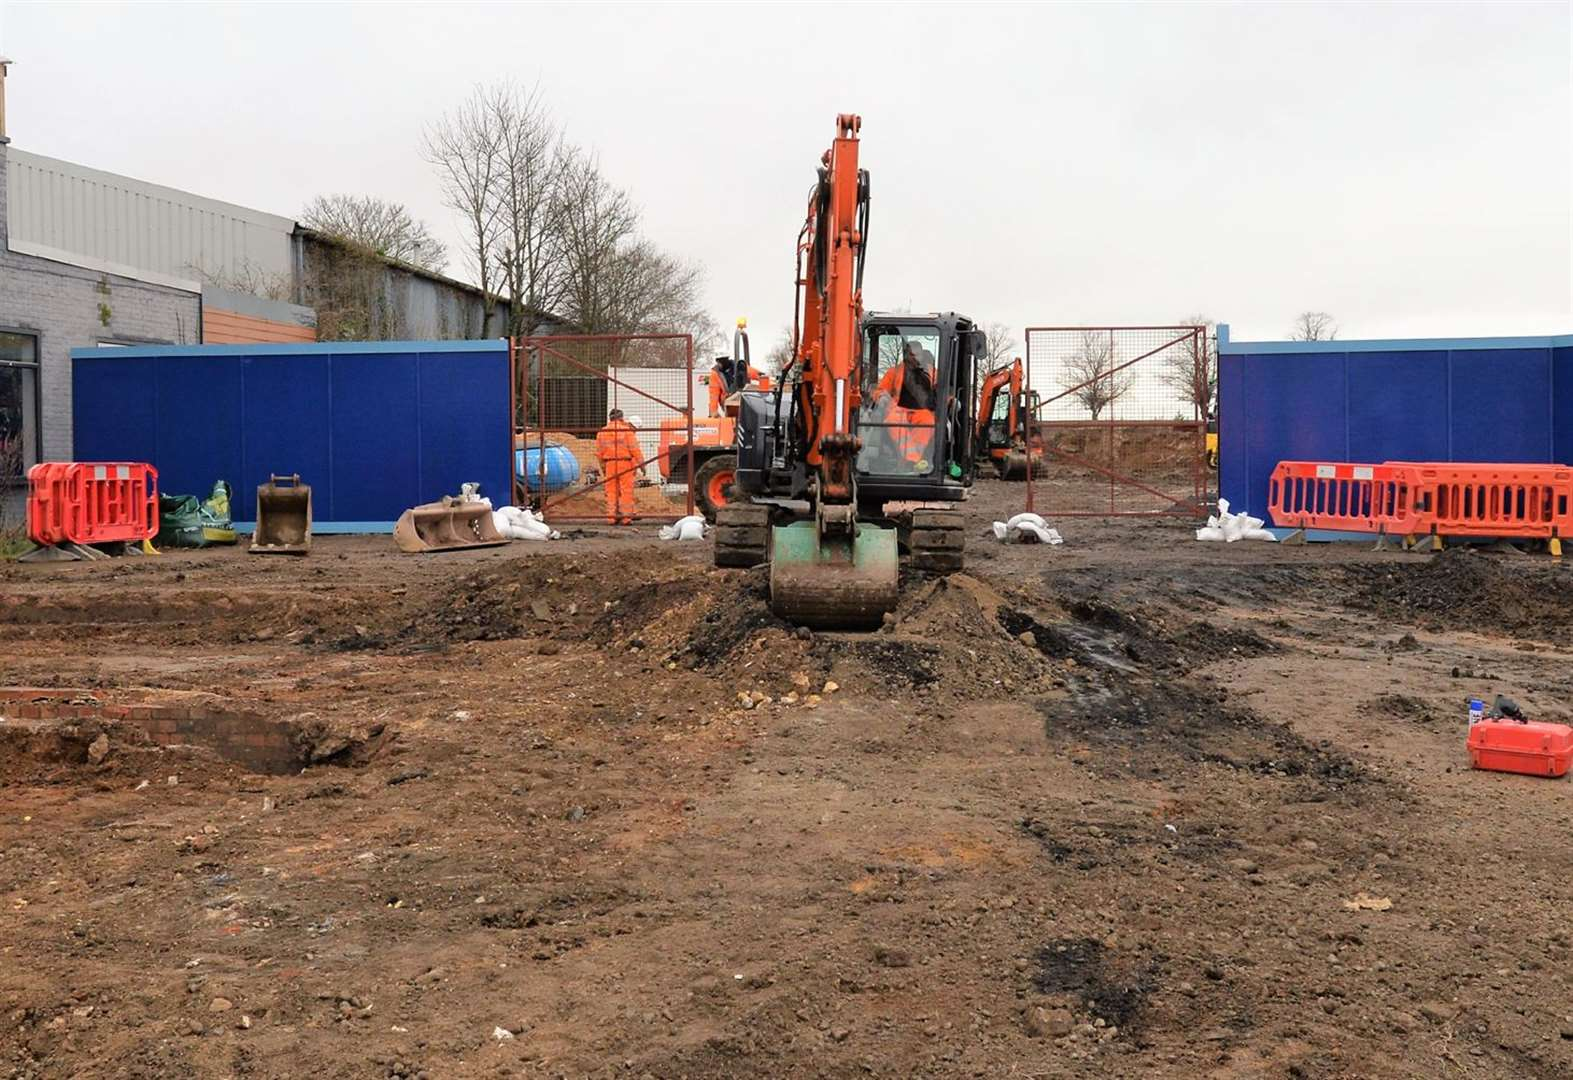 Work at Newmarket's new Aldi begins in earnest as academy head warns of 'considerable disruption'